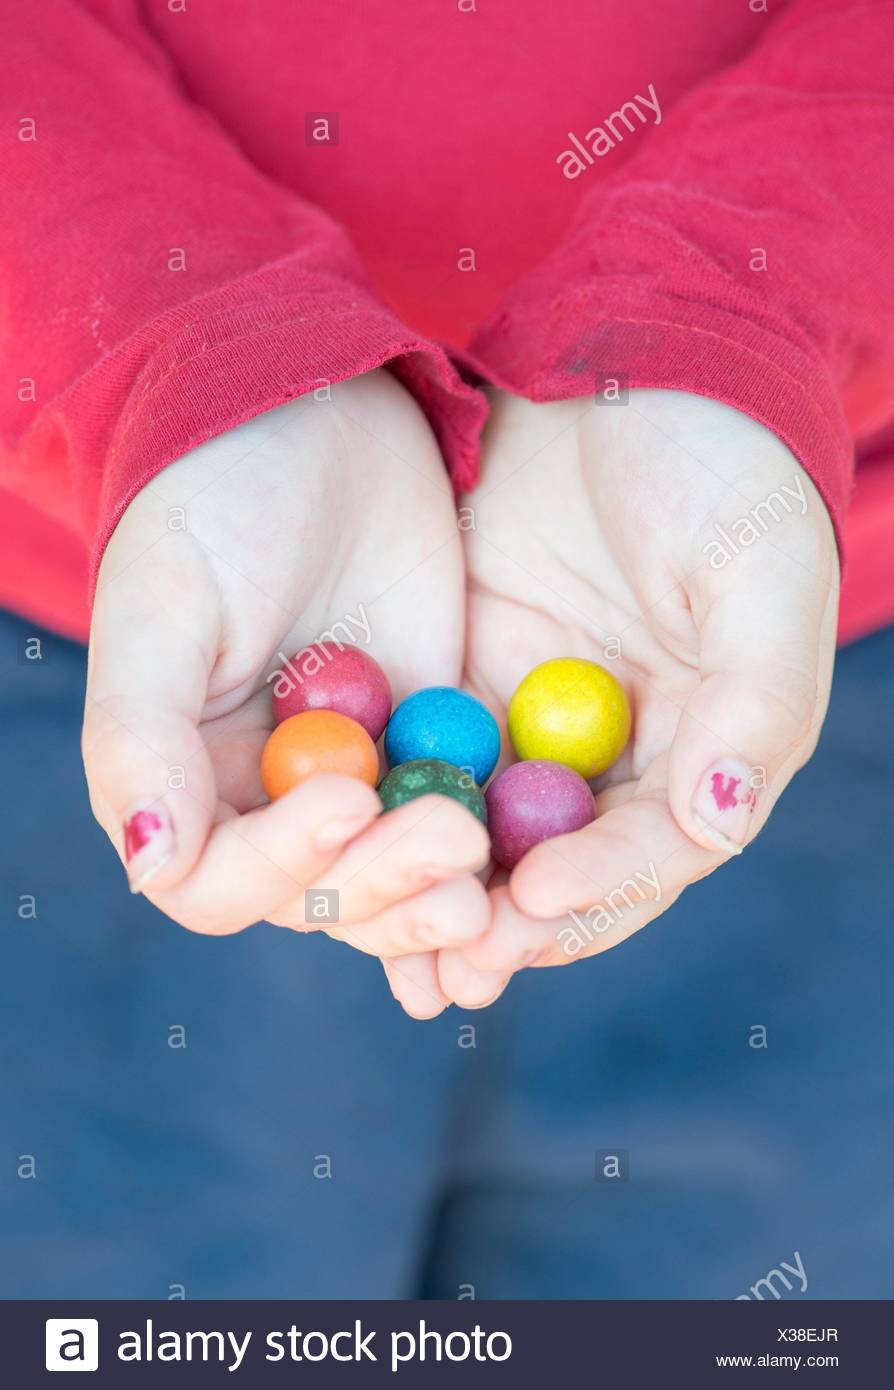 Childhood moment. Hands of child holding colorful toy marbles. - Stock Image